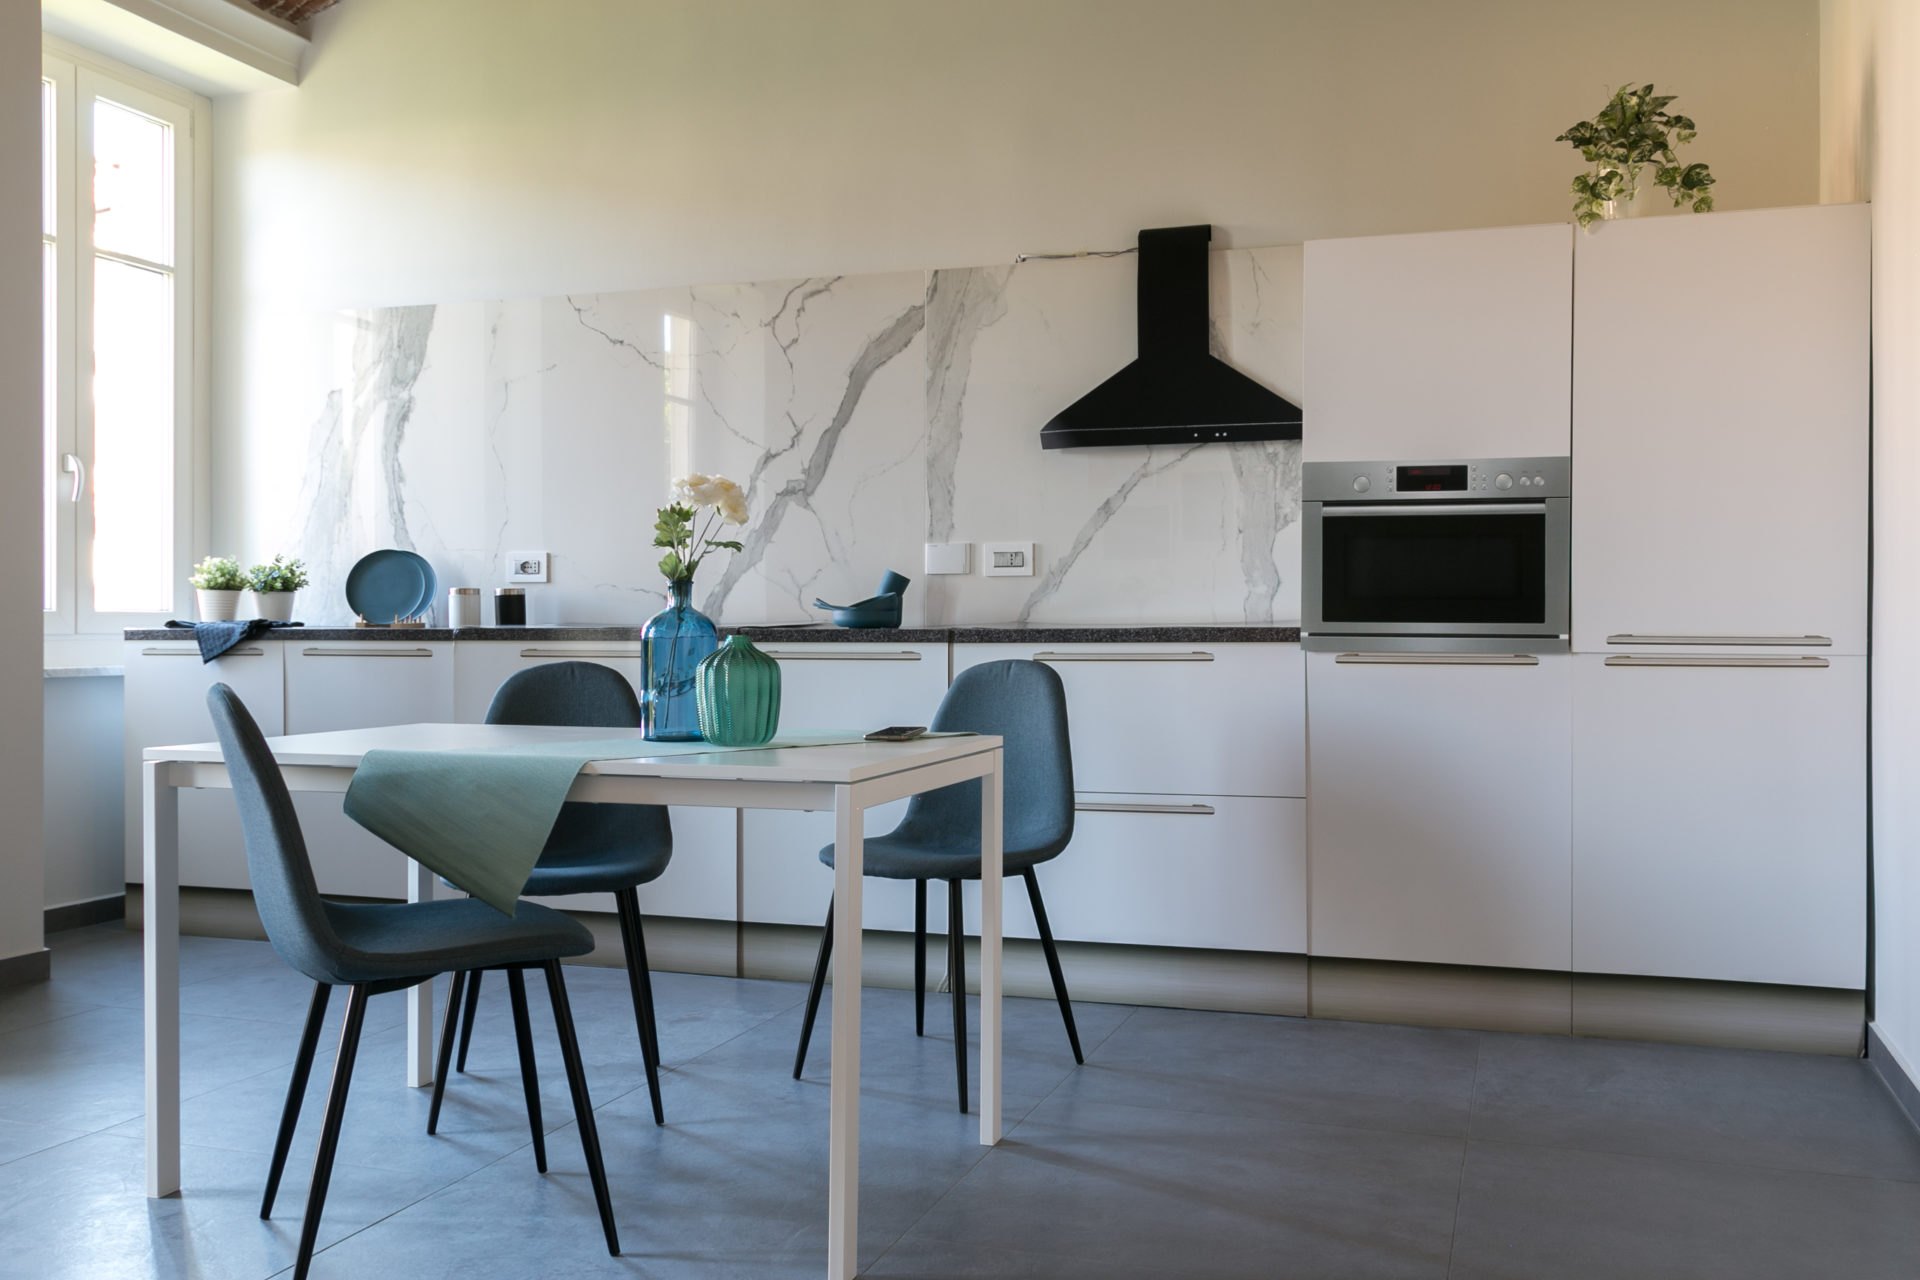 homeonstage-home-staging-casa-frejus_04